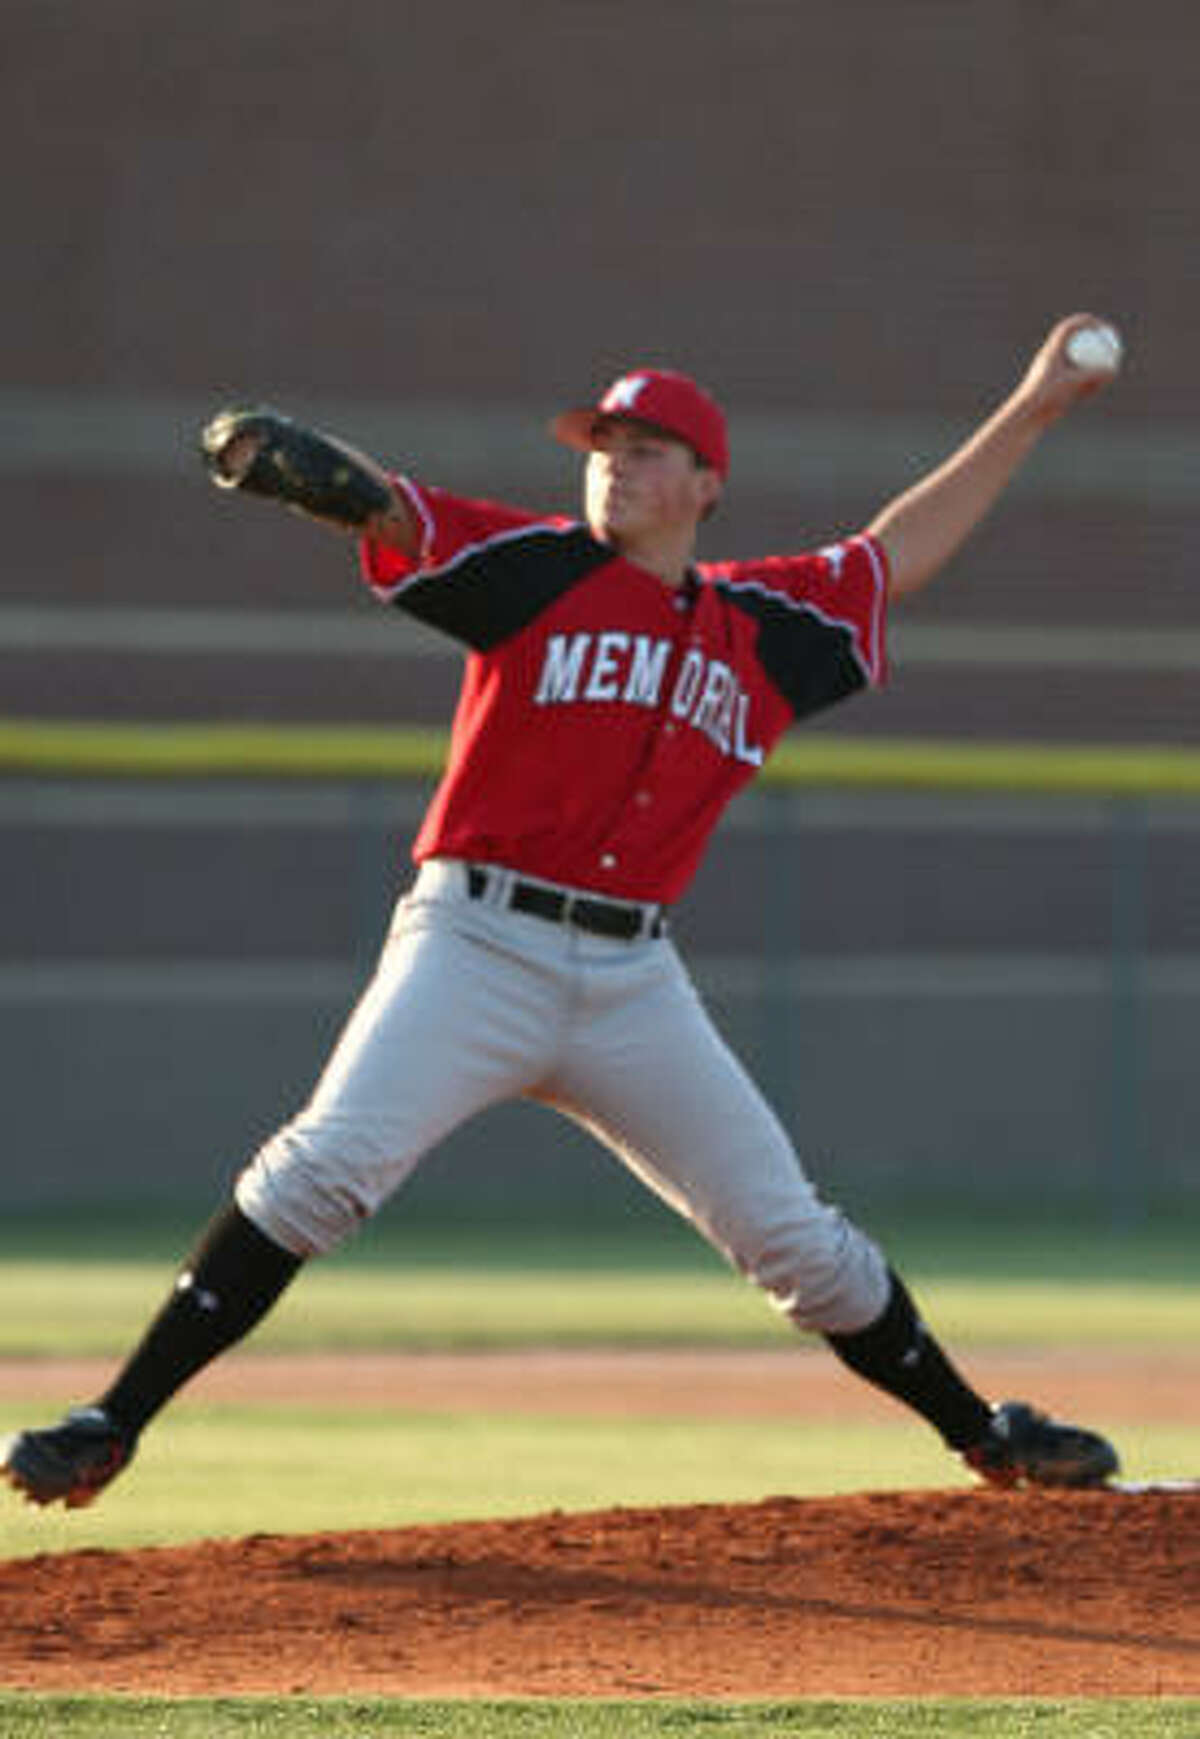 Memorial pitcher Steven Murray started and got the win against Cinco Ranch. Murray threw six strong innings for Memorial, giving up four hits while striking out nine.